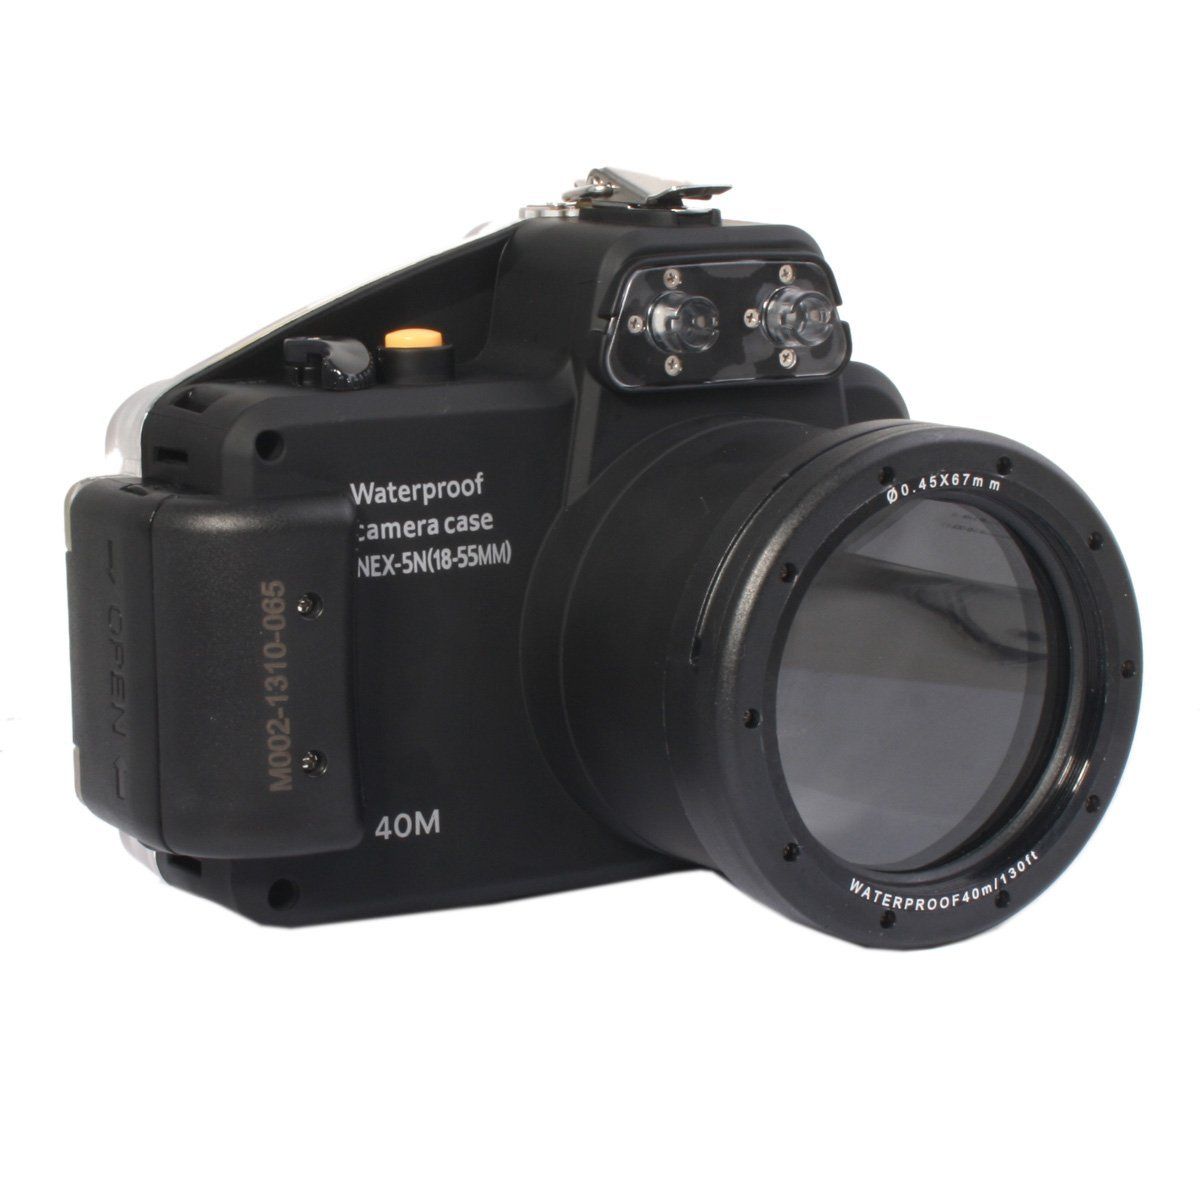 40m/130ft Waterproof Underwater Camera Housing Case for Sony NEX-5N Can Be Used With 18-55mm Lens 65 95 55mm waterproof case